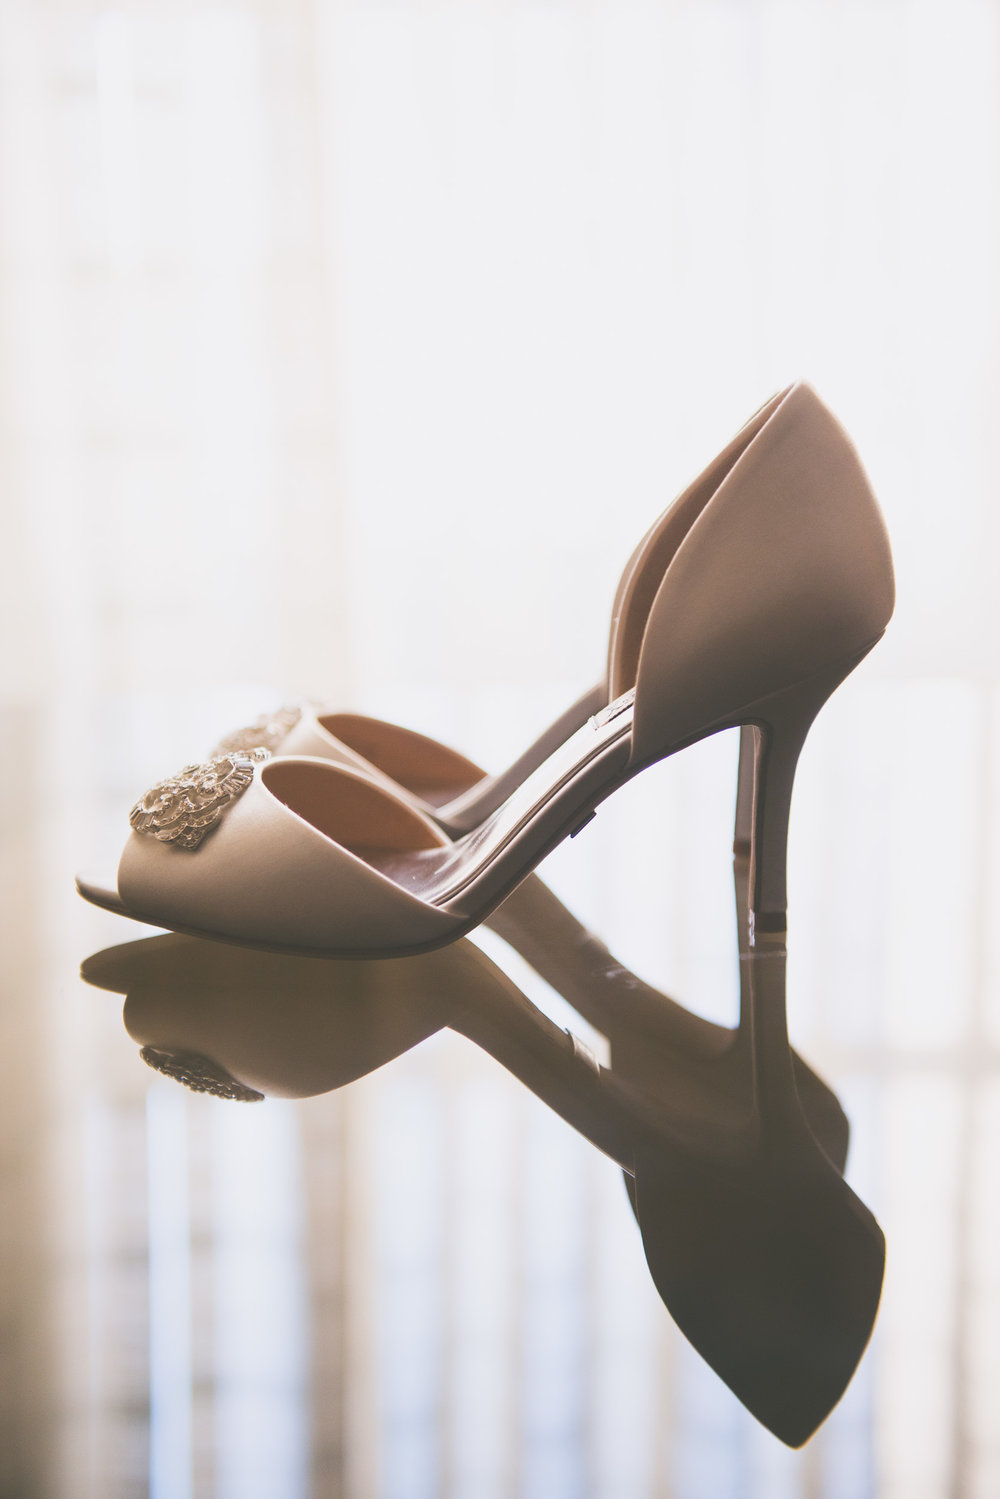 Shoes - Weddings - Photo credit Nicola Bailey.jpg